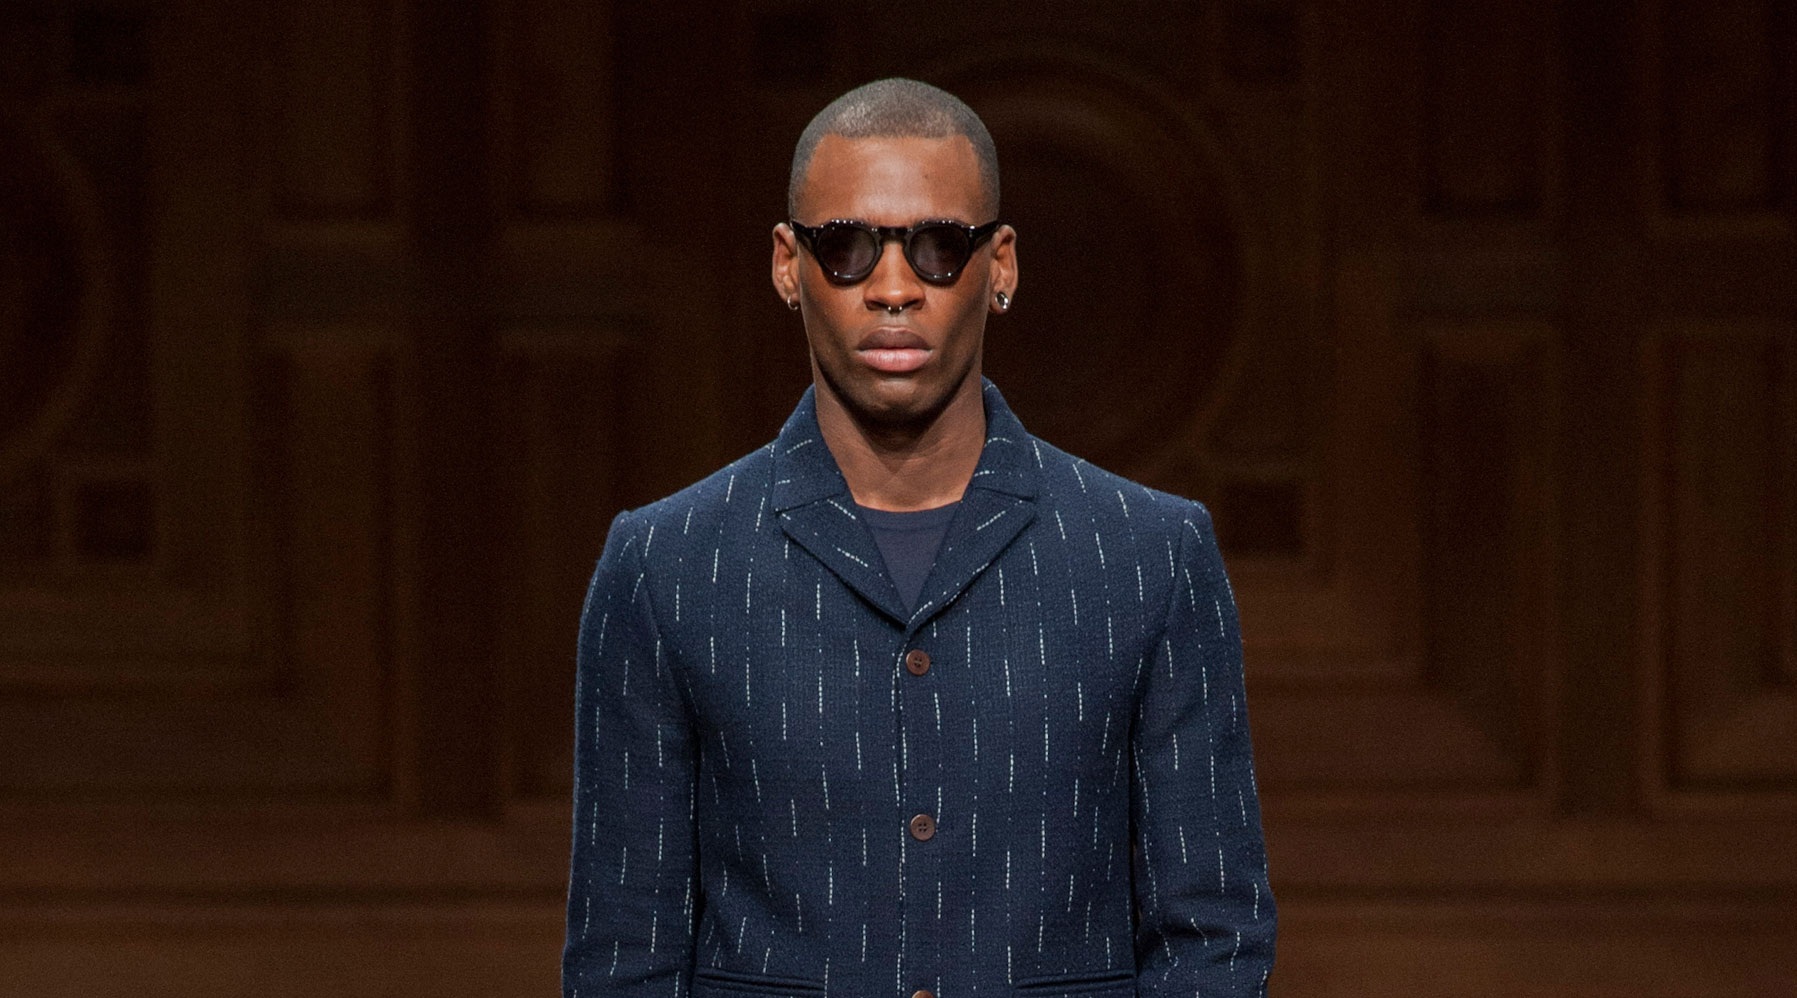 Runway Looks from the Bill Tornade Men's Fashion Show in Paris